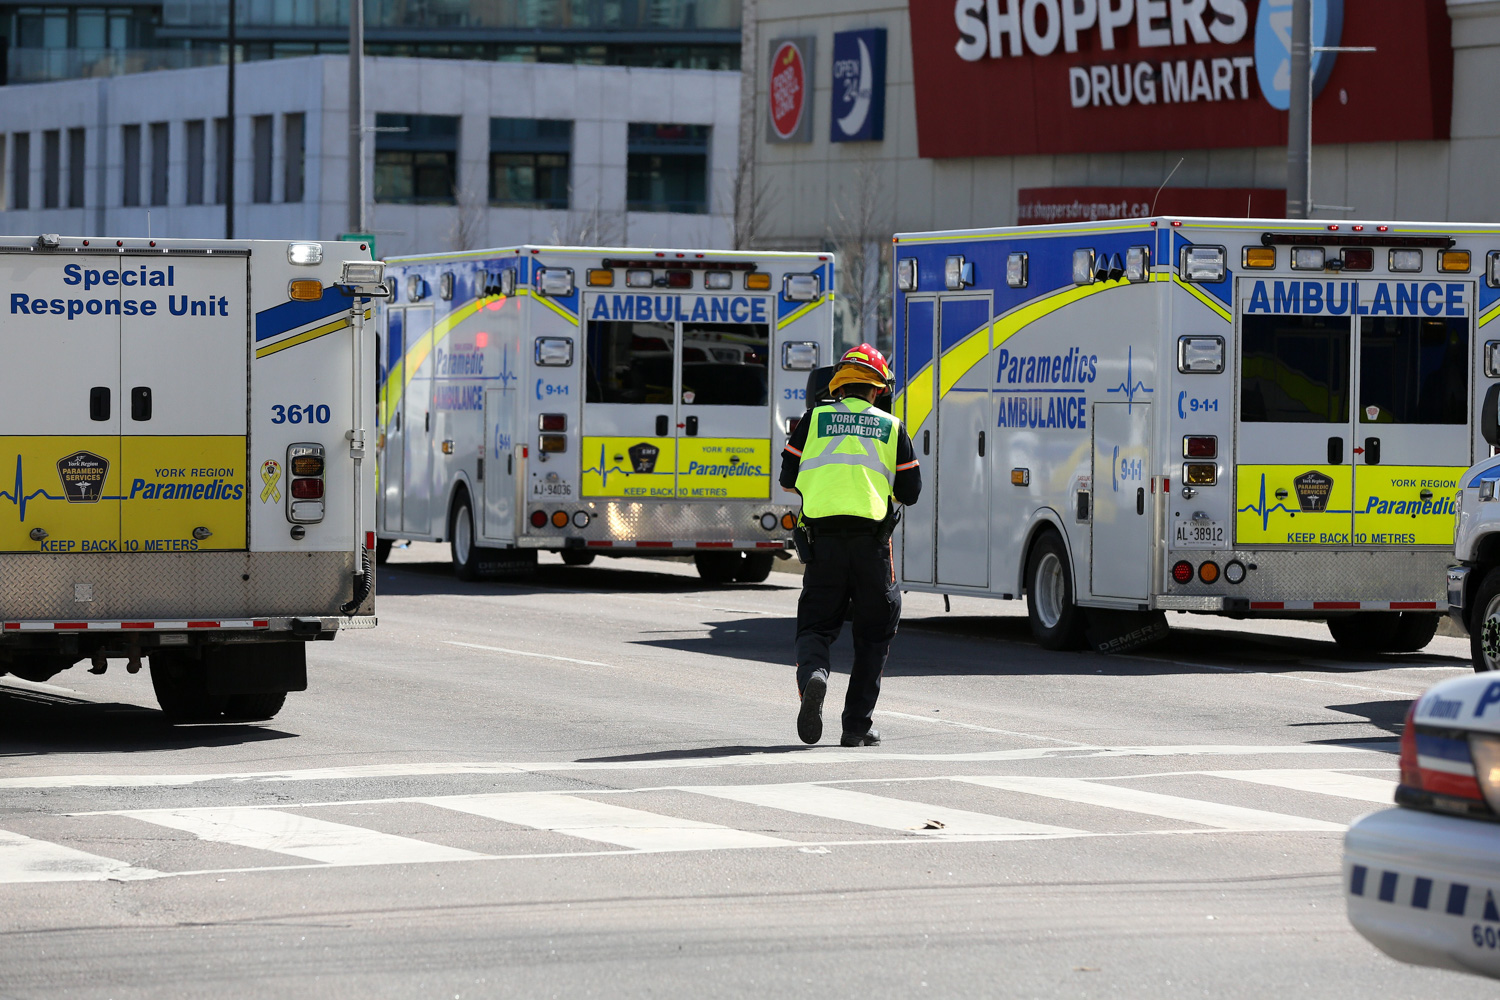 <div class='meta'><div class='origin-logo' data-origin='none'></div><span class='caption-text' data-credit='Lars Hagberg/AFP/Getty Images'>Police officers stand near several ambulances after a truck hit several pedestrians in Toronto, Ontario, on on April 23, 2018.</span></div>